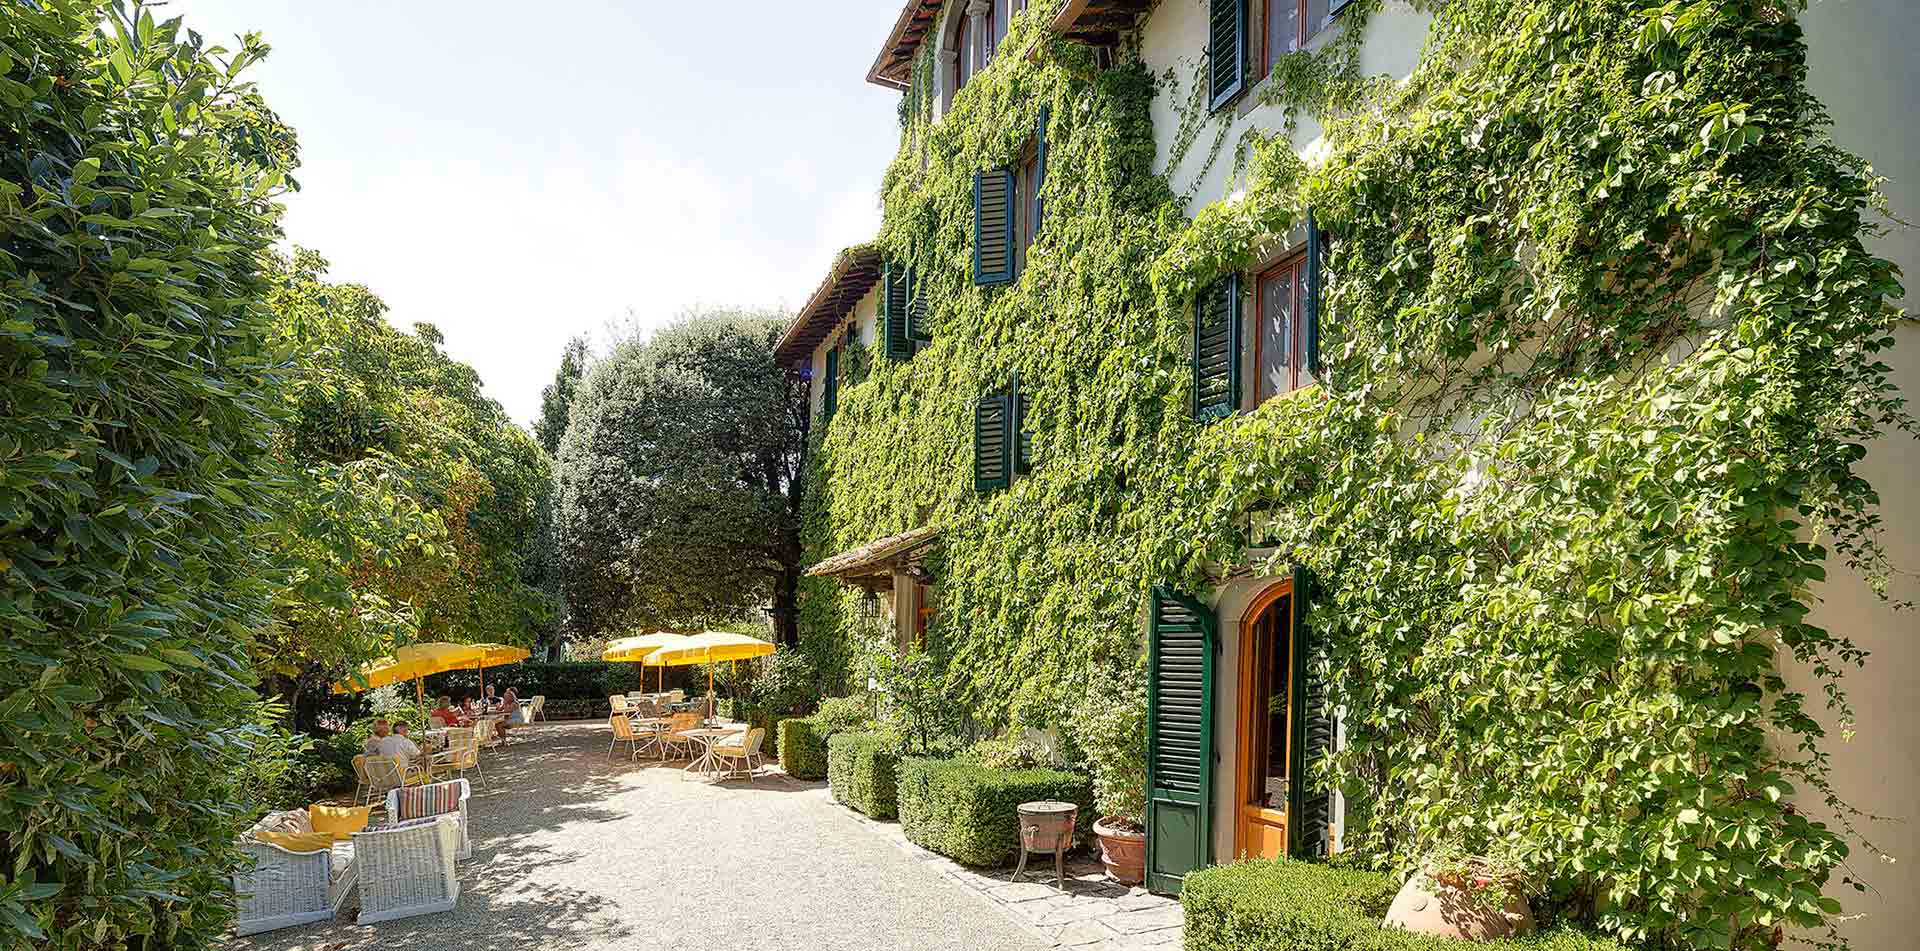 Europe Italy Panzano in Chianti Villa Le Barone garden with ivy walls - luxury vacation destinations